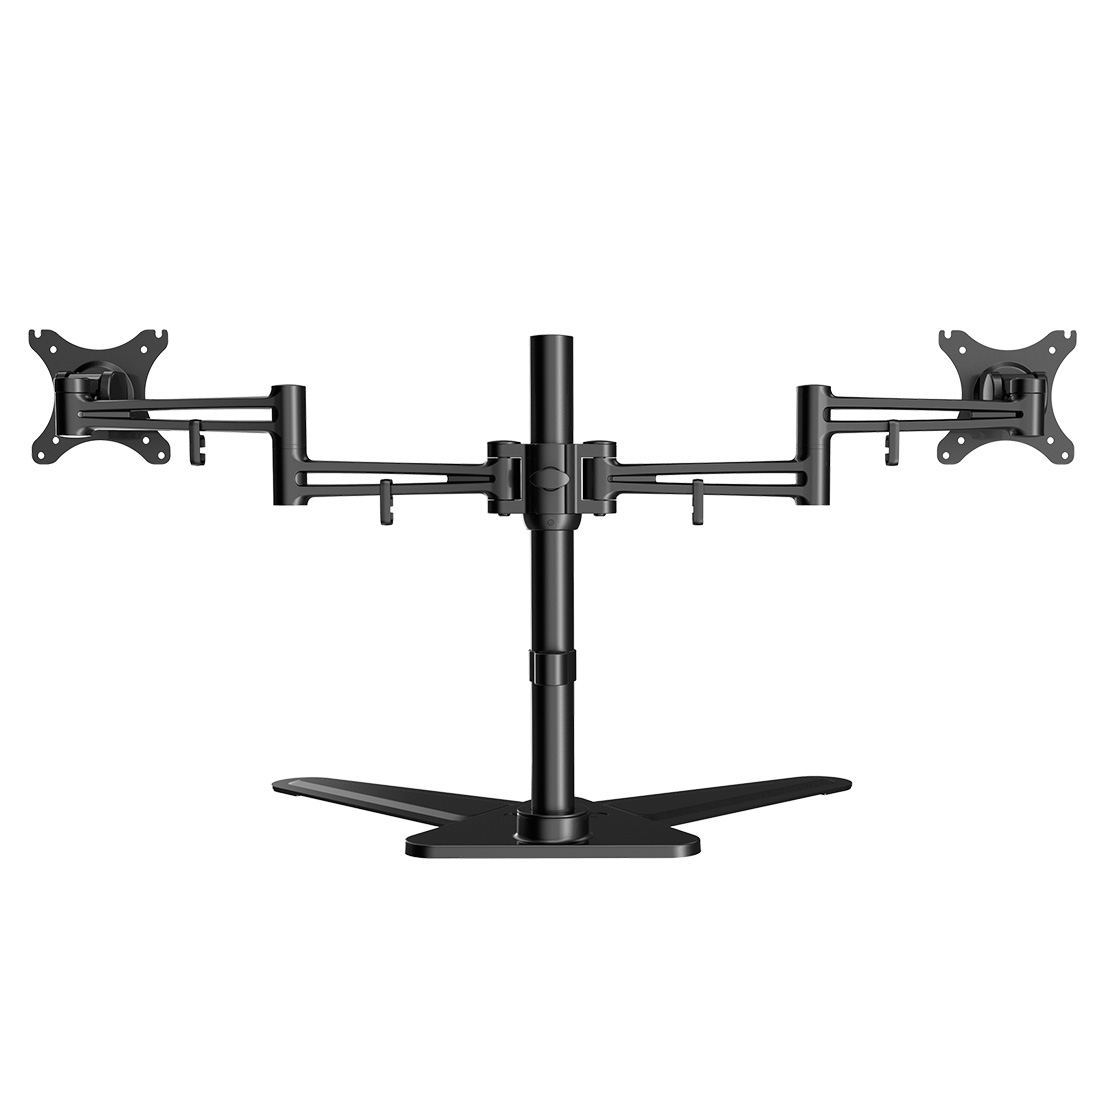 LOCTEK DF2D FULL MOTION FREE STANDING DUAL MONITOR ARM